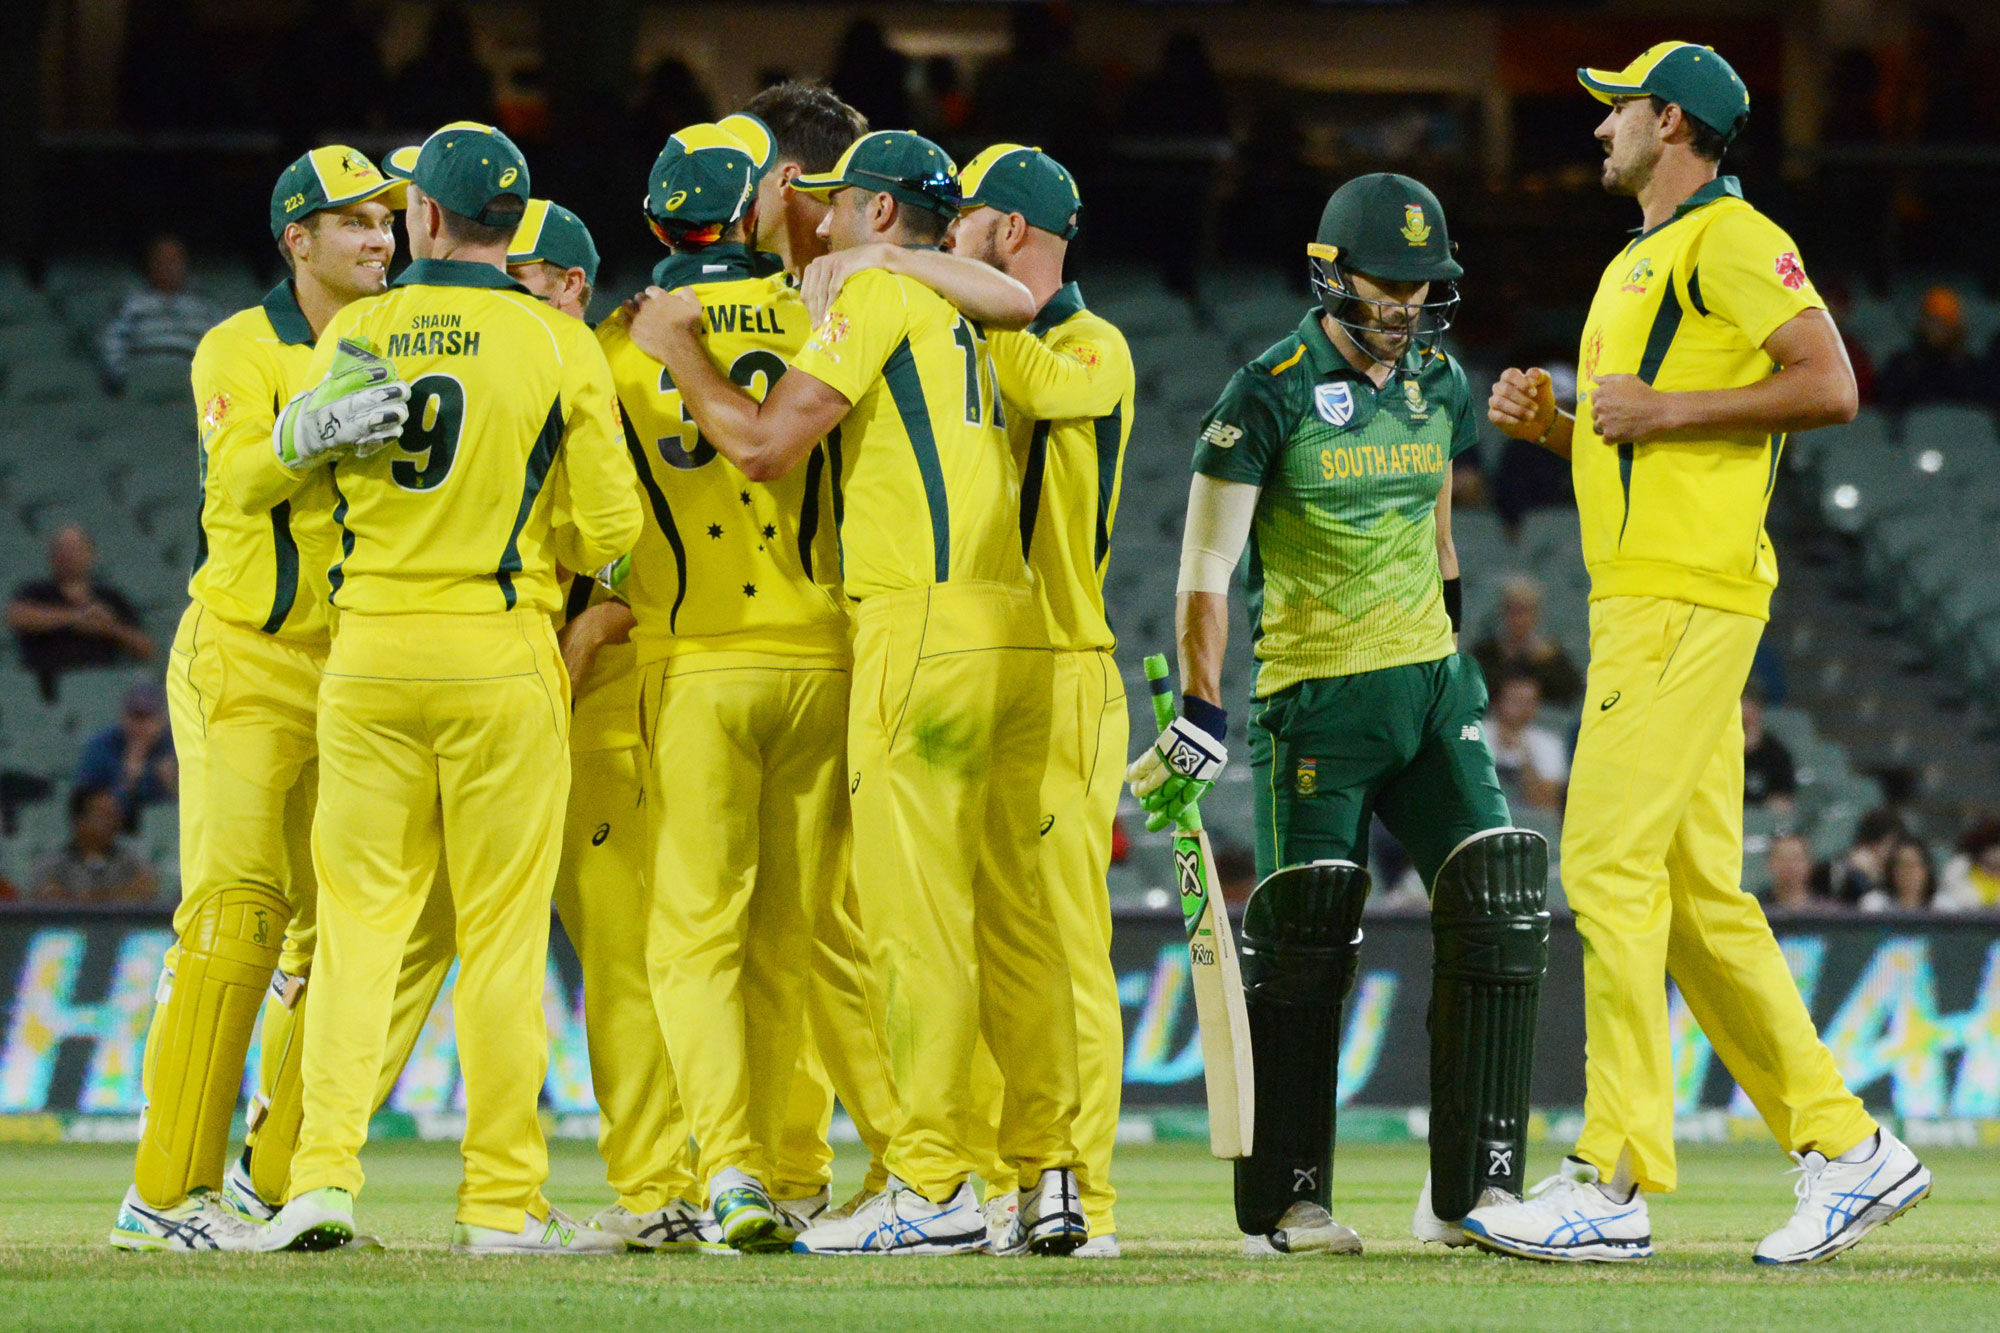 Australia's teammates congratulate Josh Hazlewood (C) after taking the wicket of South Africa's Reeza Hendricks during the second one day international cricket match between Australia and South Africa at the Adelaide Oval in Adelaide on November 9, 2018.